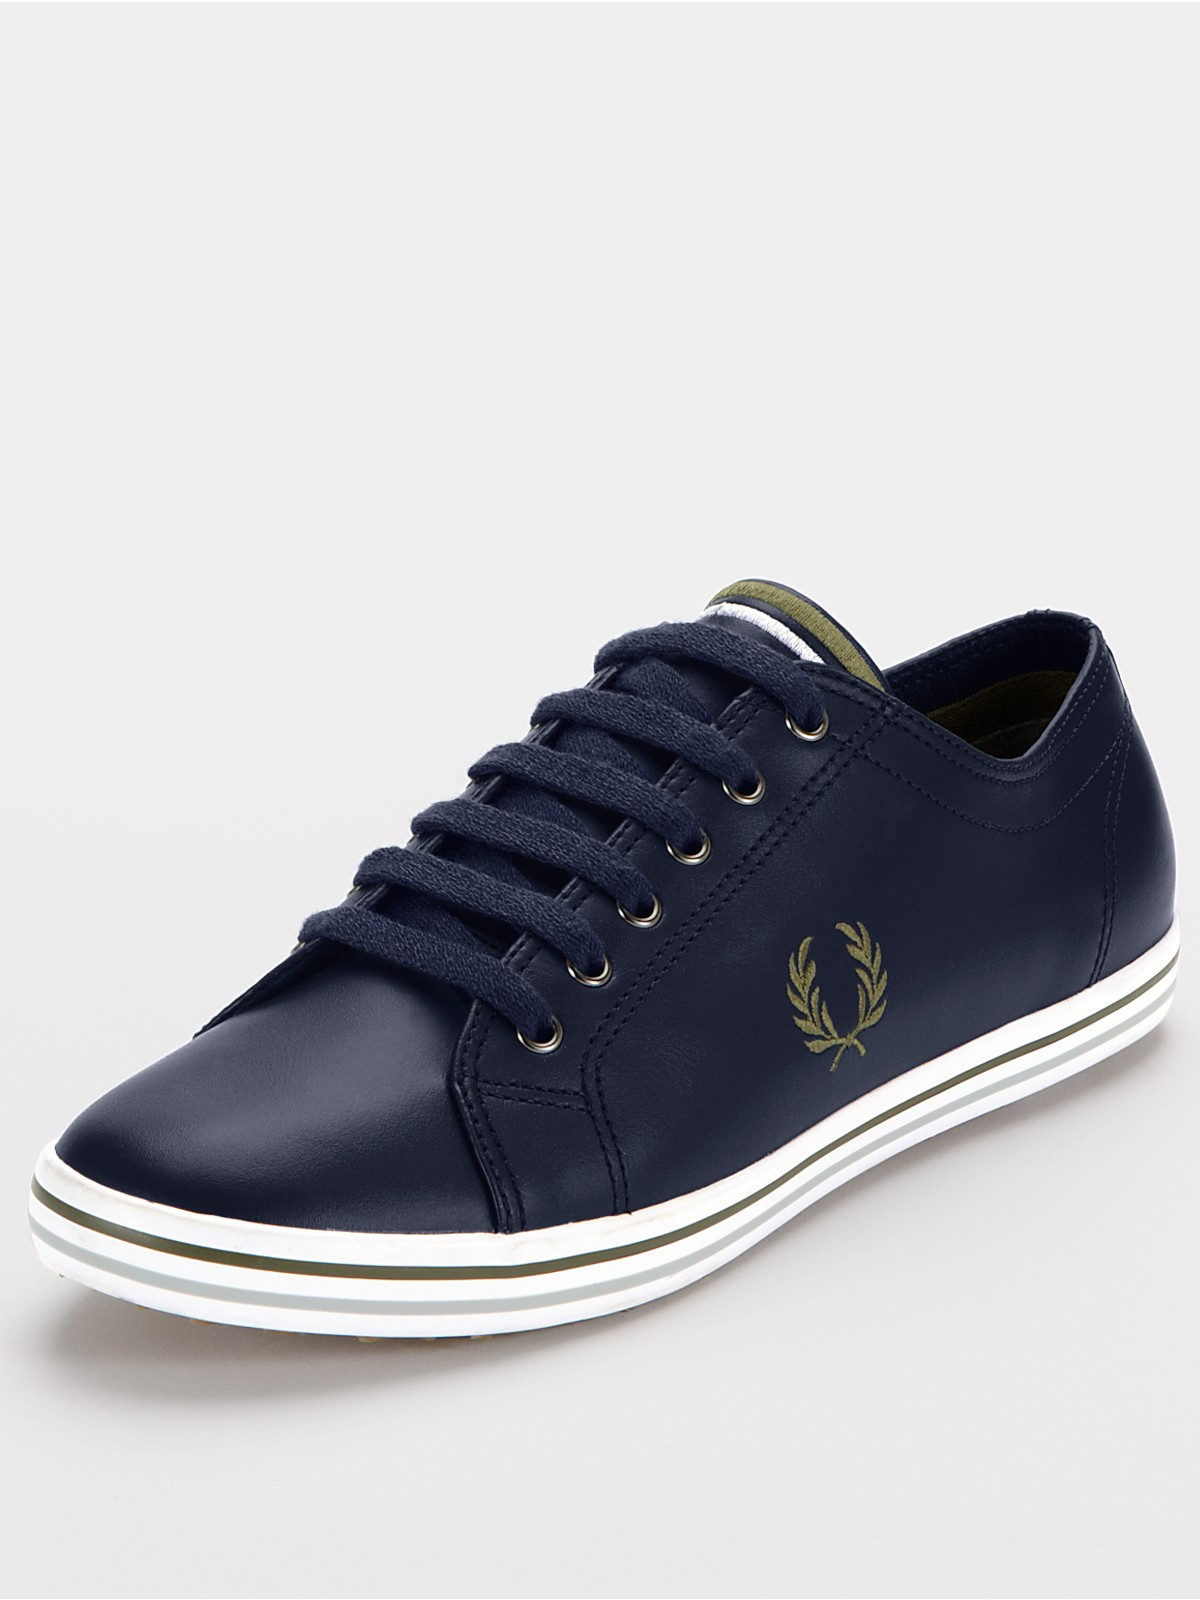 Fred Perry Men S Kingston Leather Fashion Sneaker